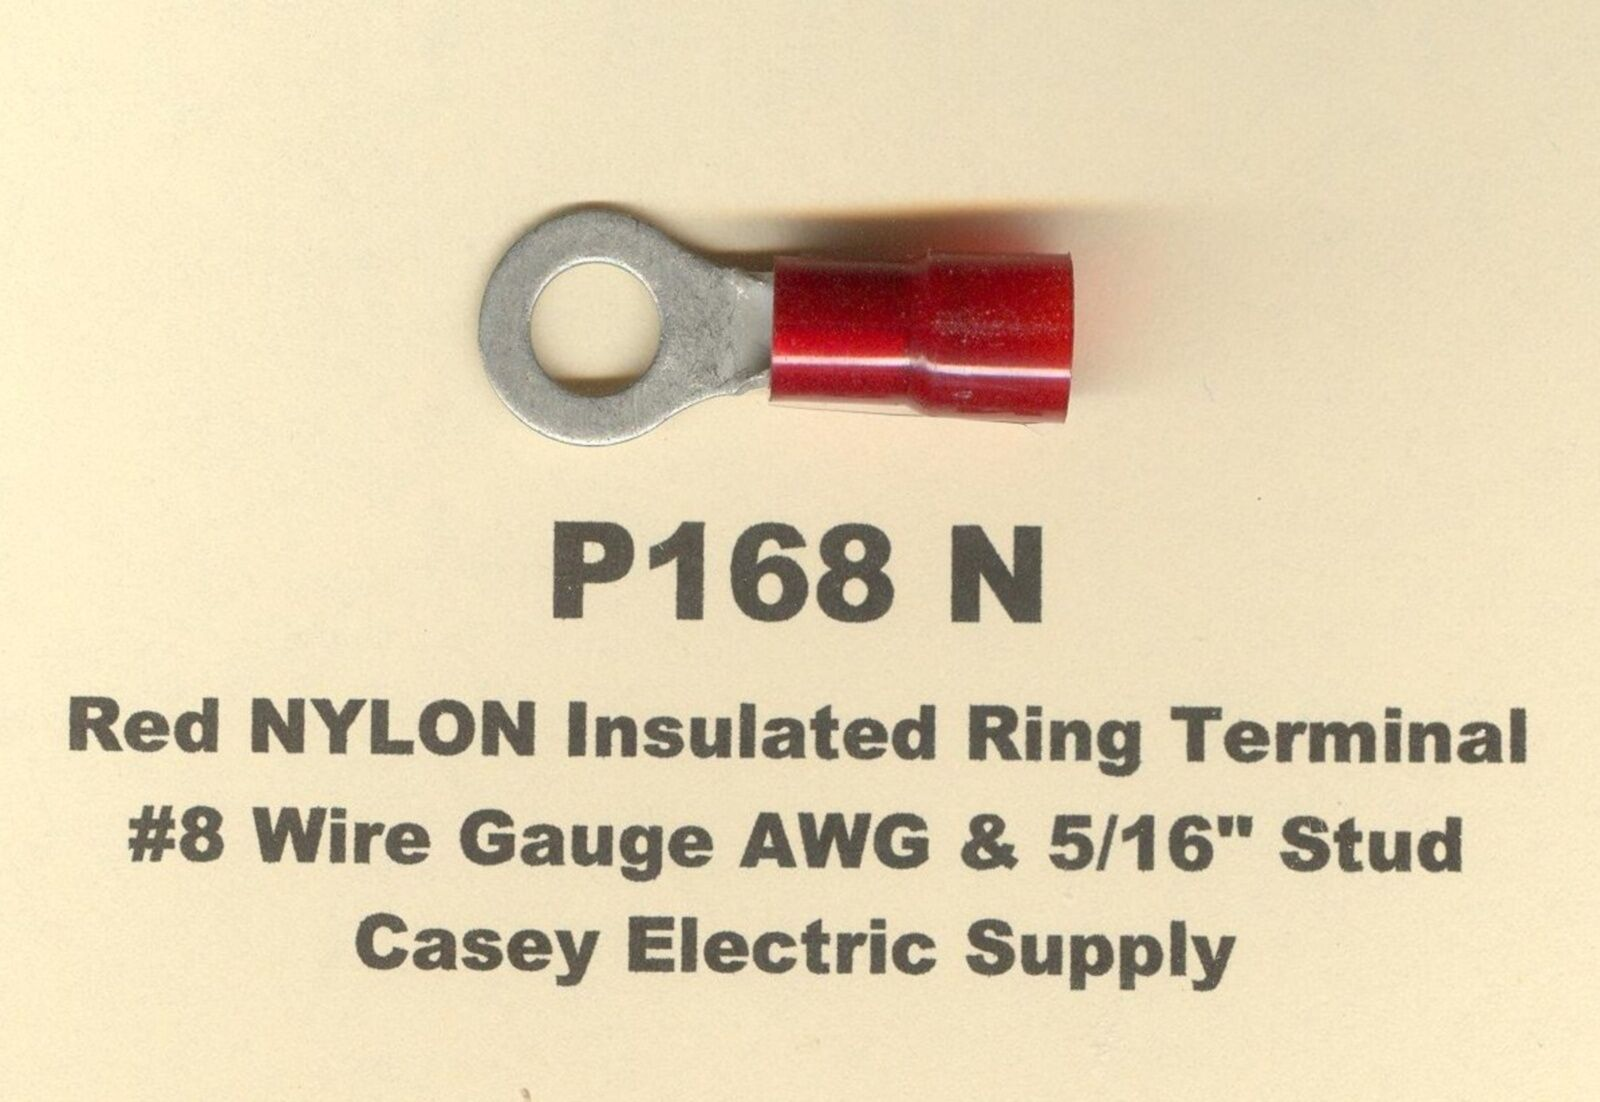 Old fashioned insulated wire 20 gauge image collection simple 20 red nylon insulated ring terminal connector 8 wire gauge 516 keyboard keysfo Gallery